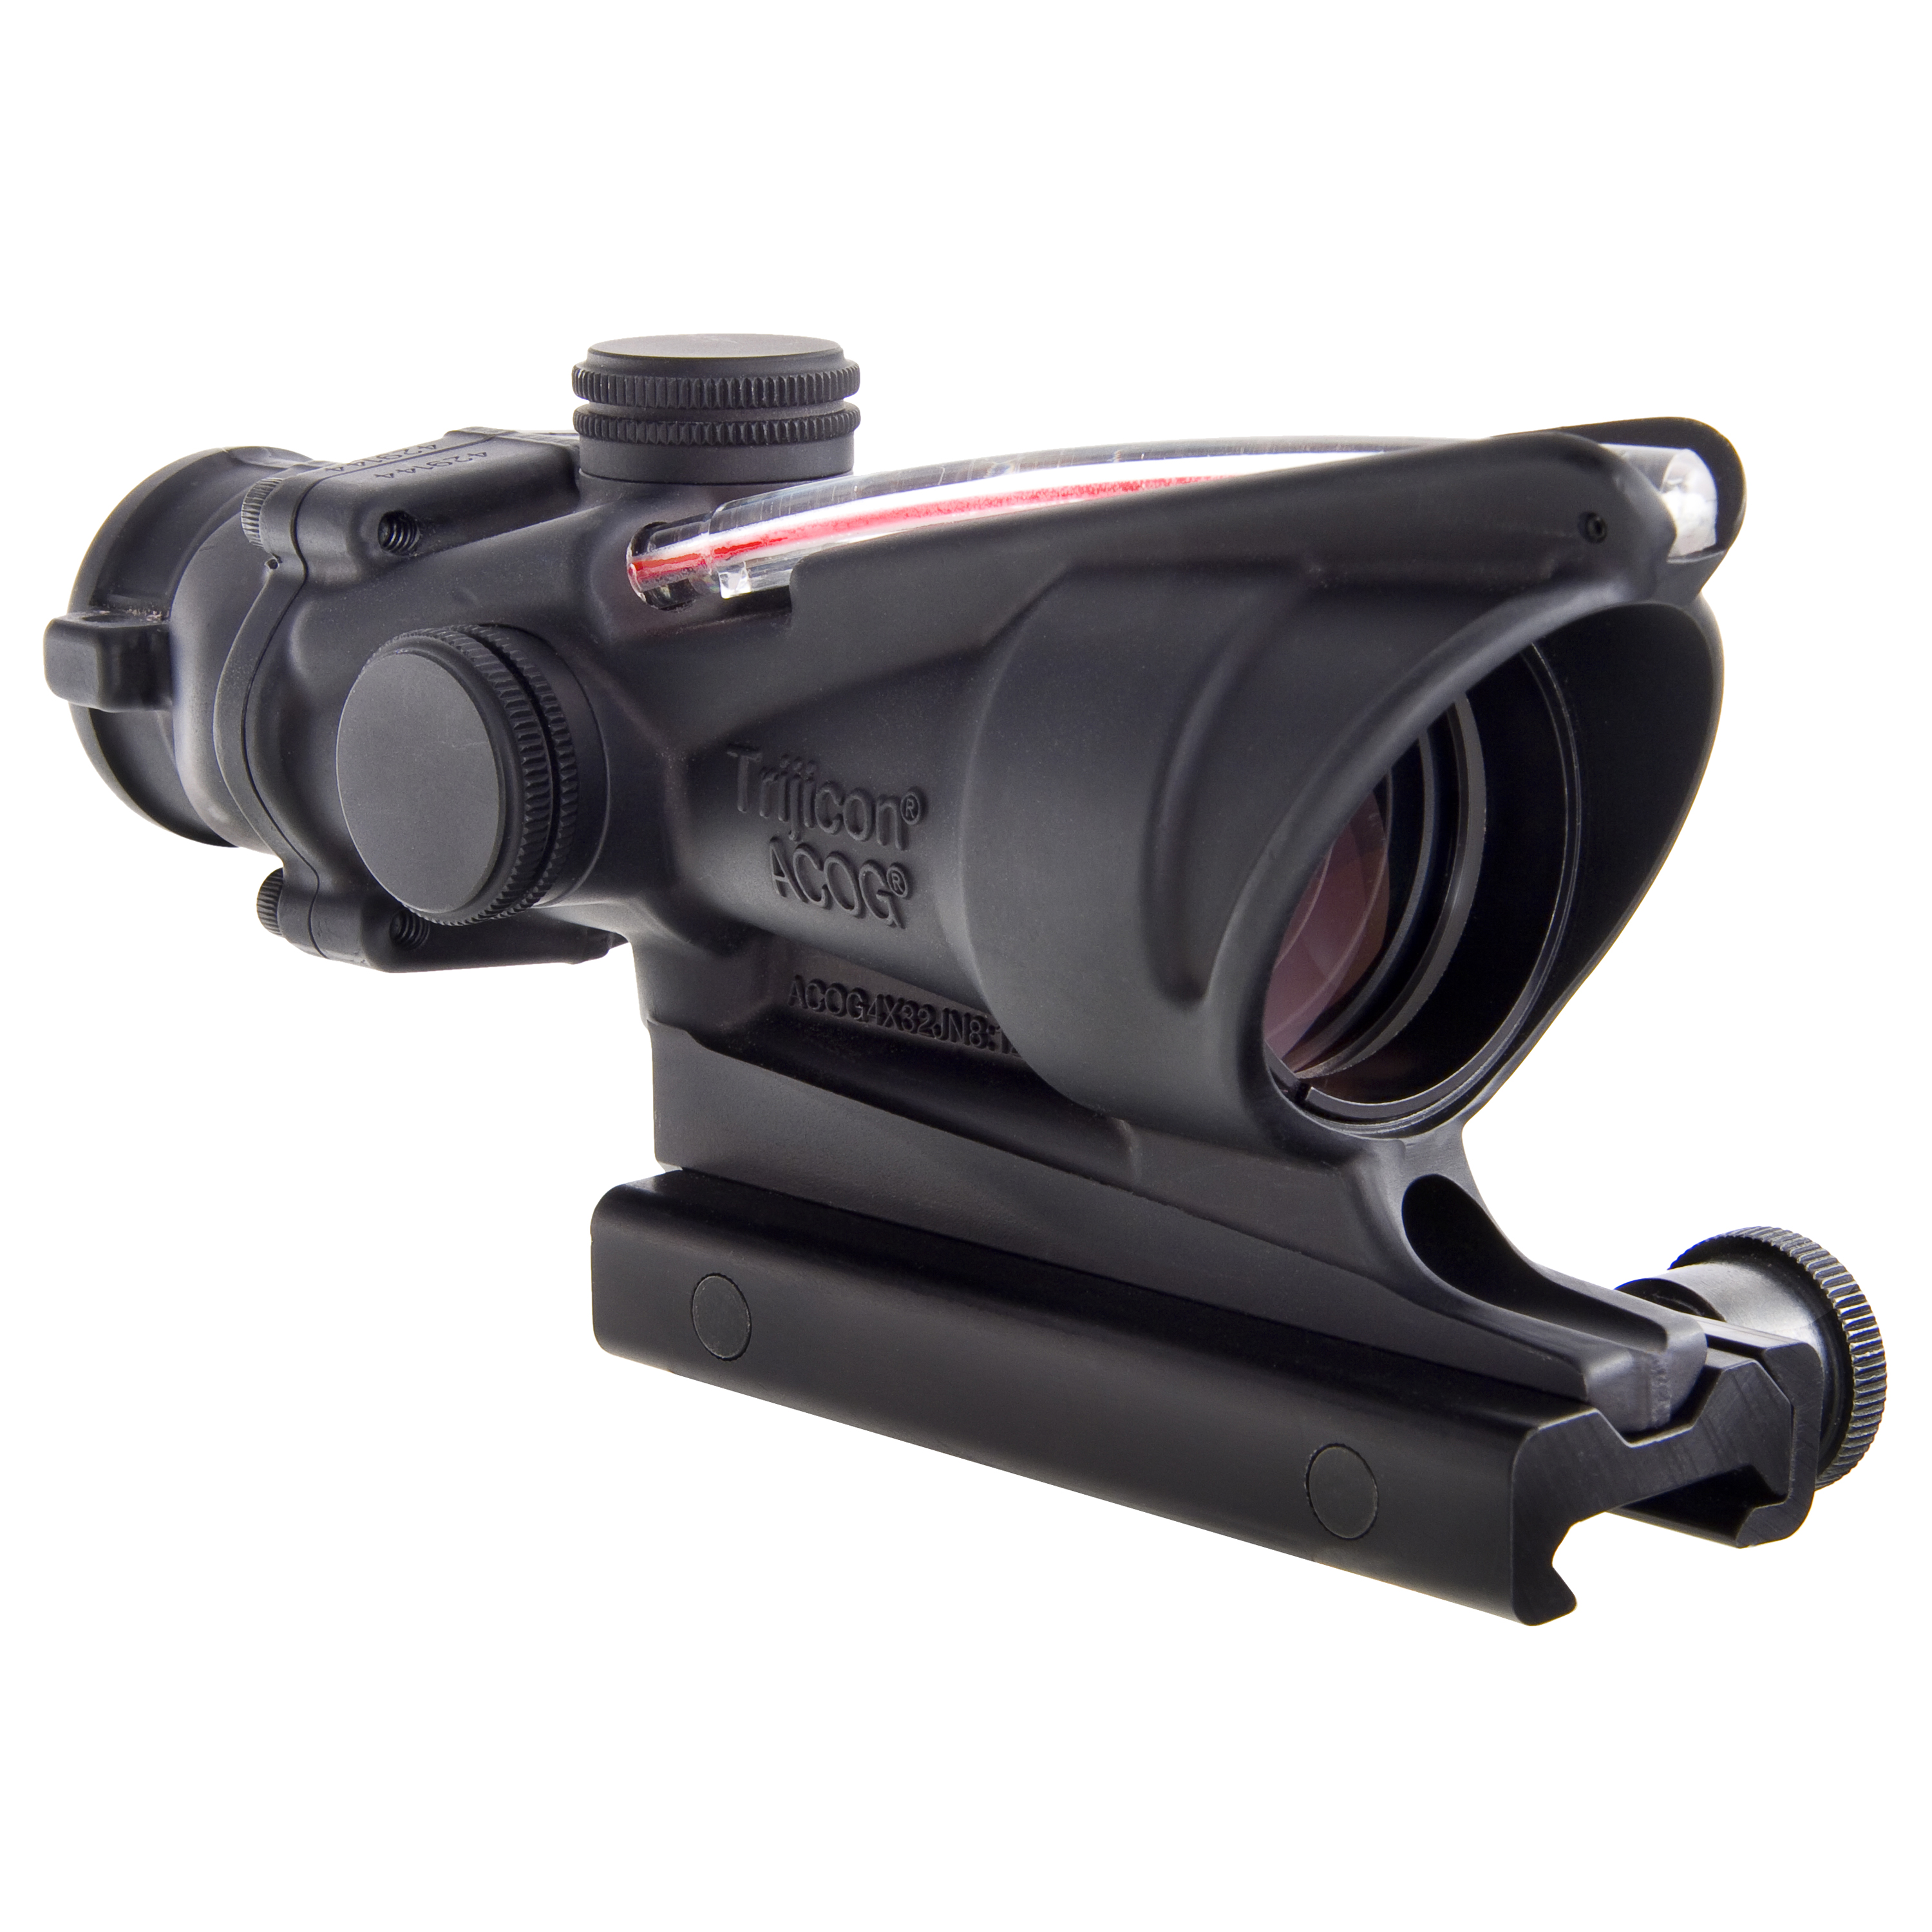 Trijicon ACOG 4x32mm Dual Illuminated Scope Red Chevron M193 Reticle with TA51 Mount, Black